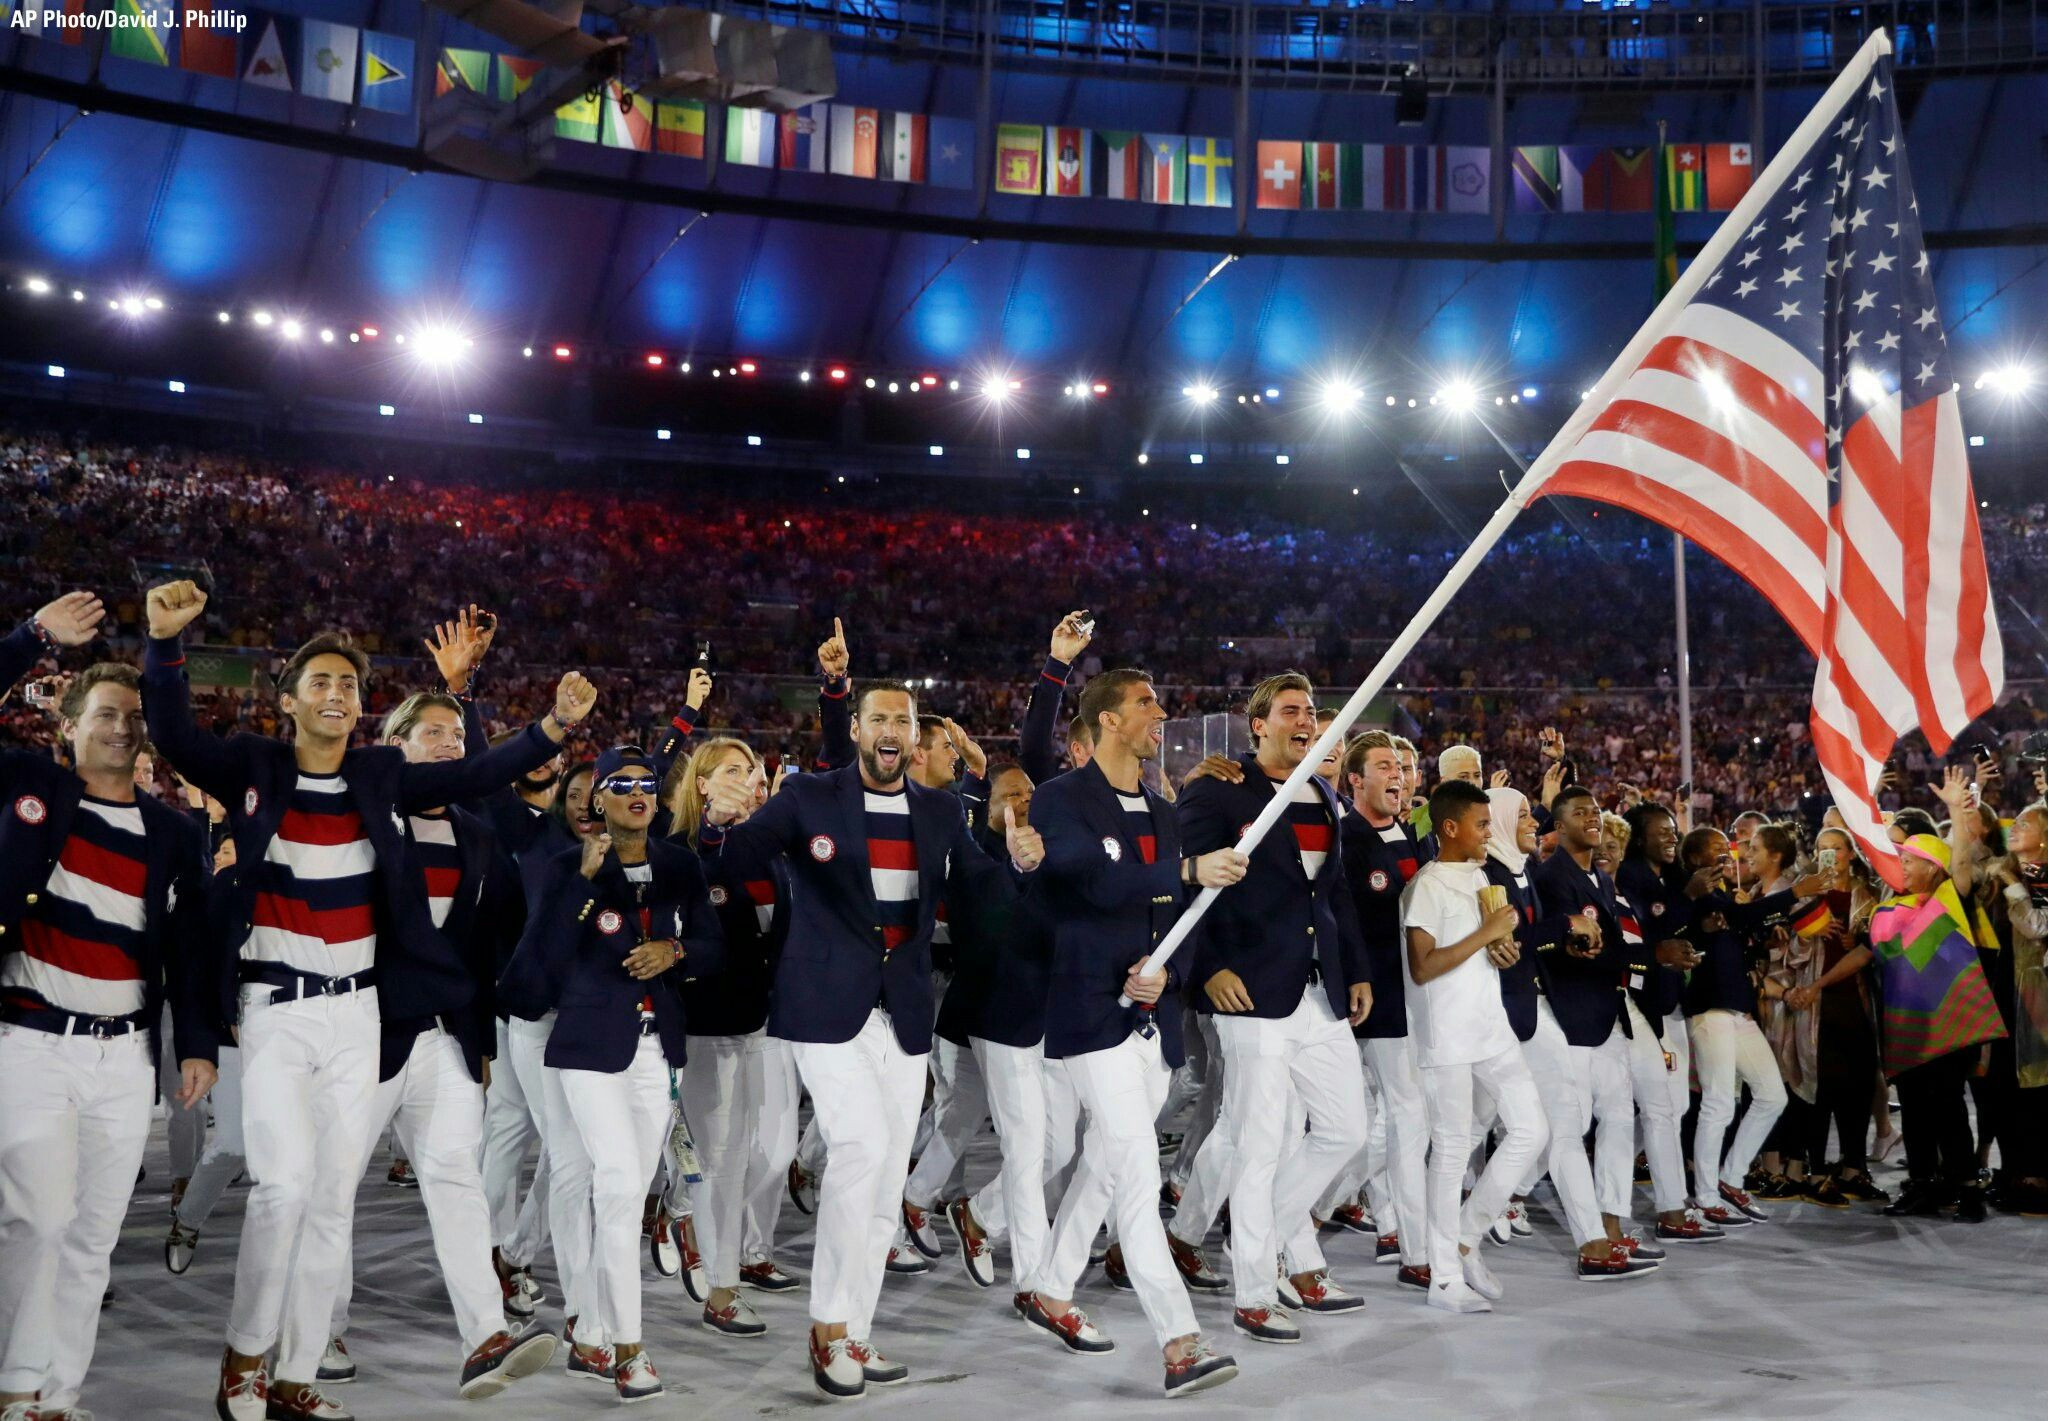 U.S. Olympic and Paralympic Properties, a joint venture between Los Angeles 2028 and the USOPC, will take over the marketing, sponsorship and licensed merchandise programmes for Team USA from 2021 ©Getty Images